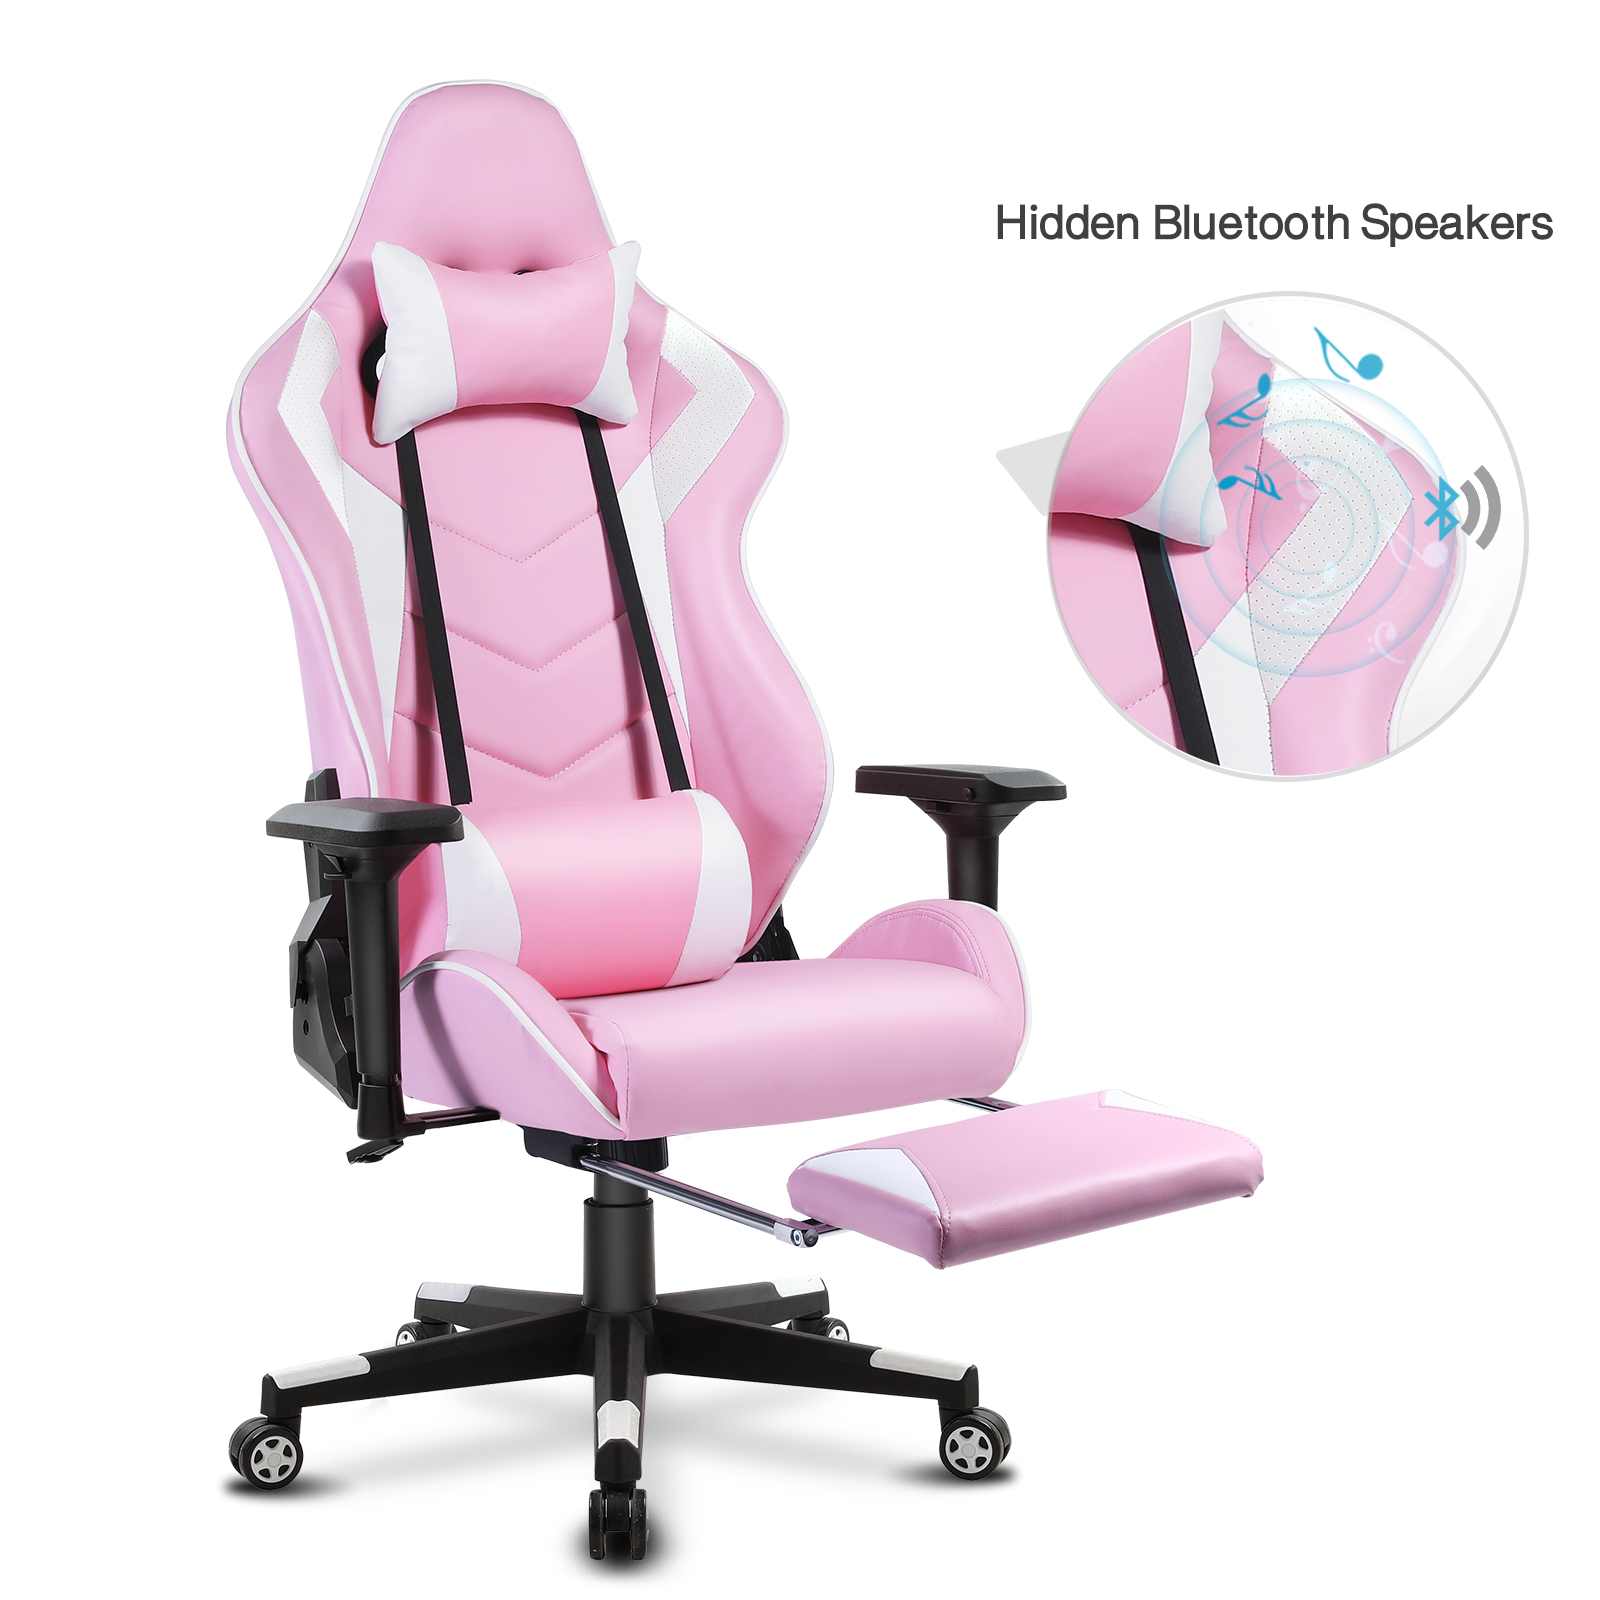 Racing Gaming Chair with Bluetooth Speakers and Footrest, Swivel